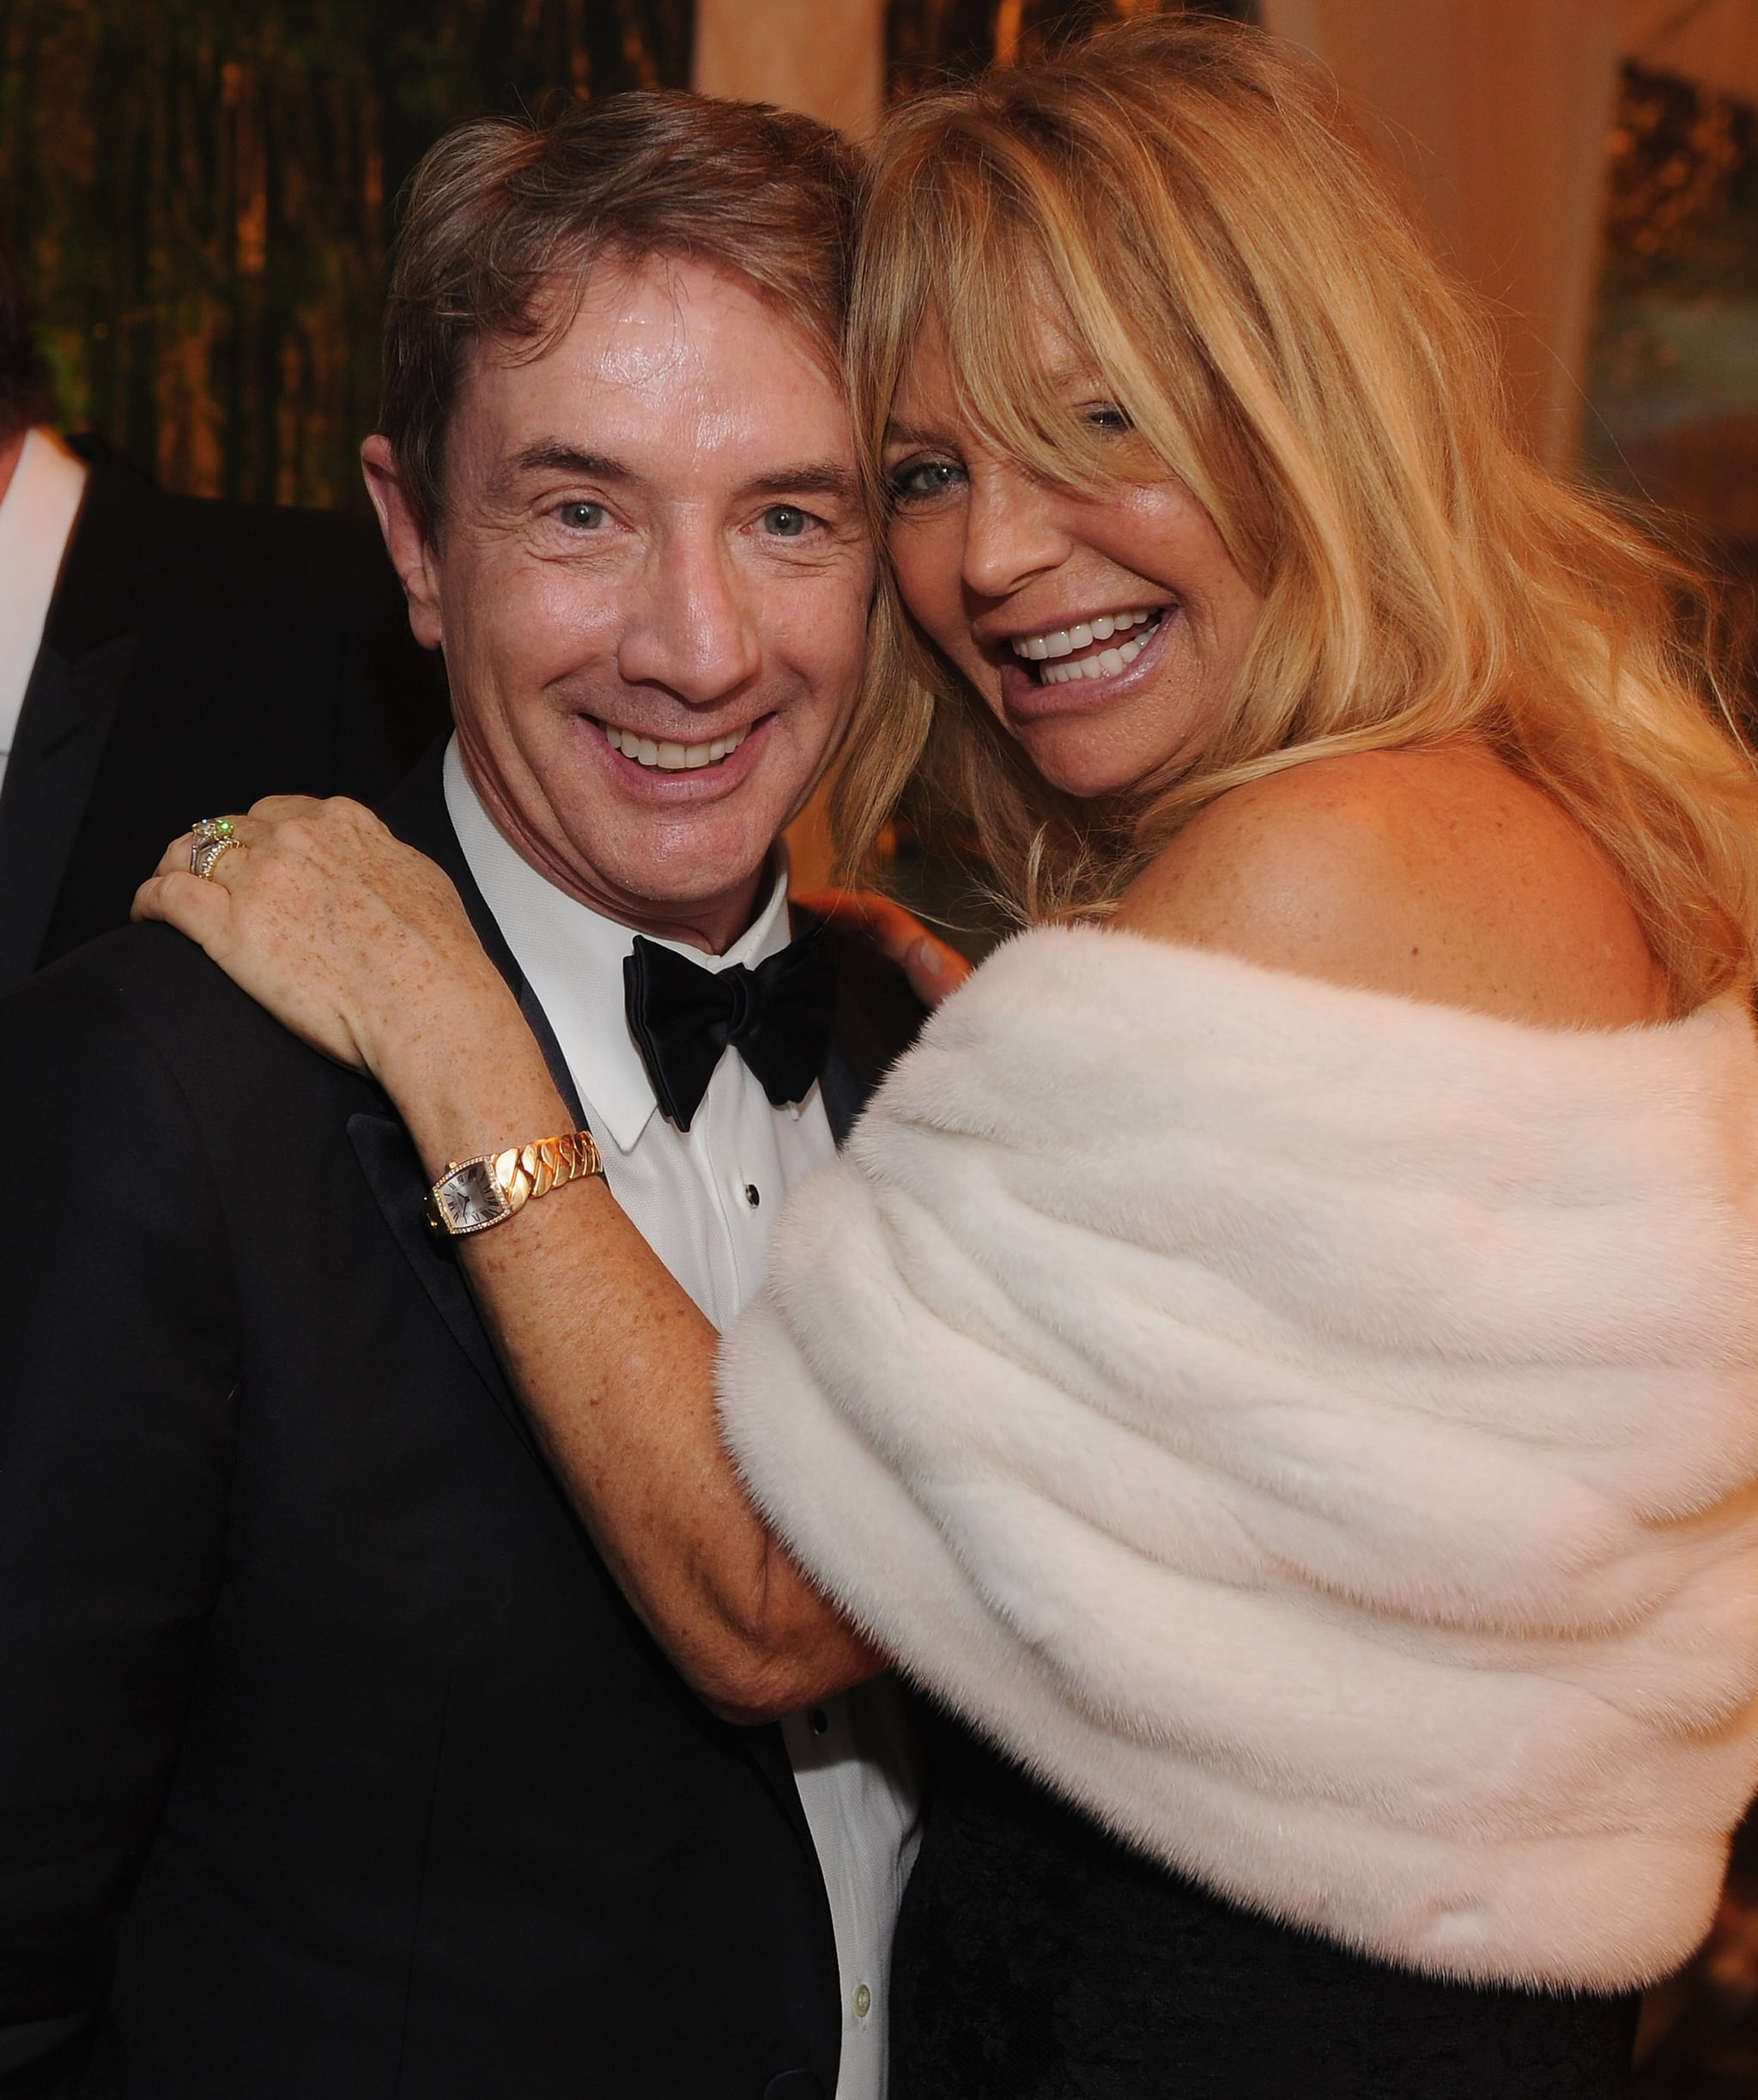 Goldie Hawn And Martin Short Got Together For A Photo